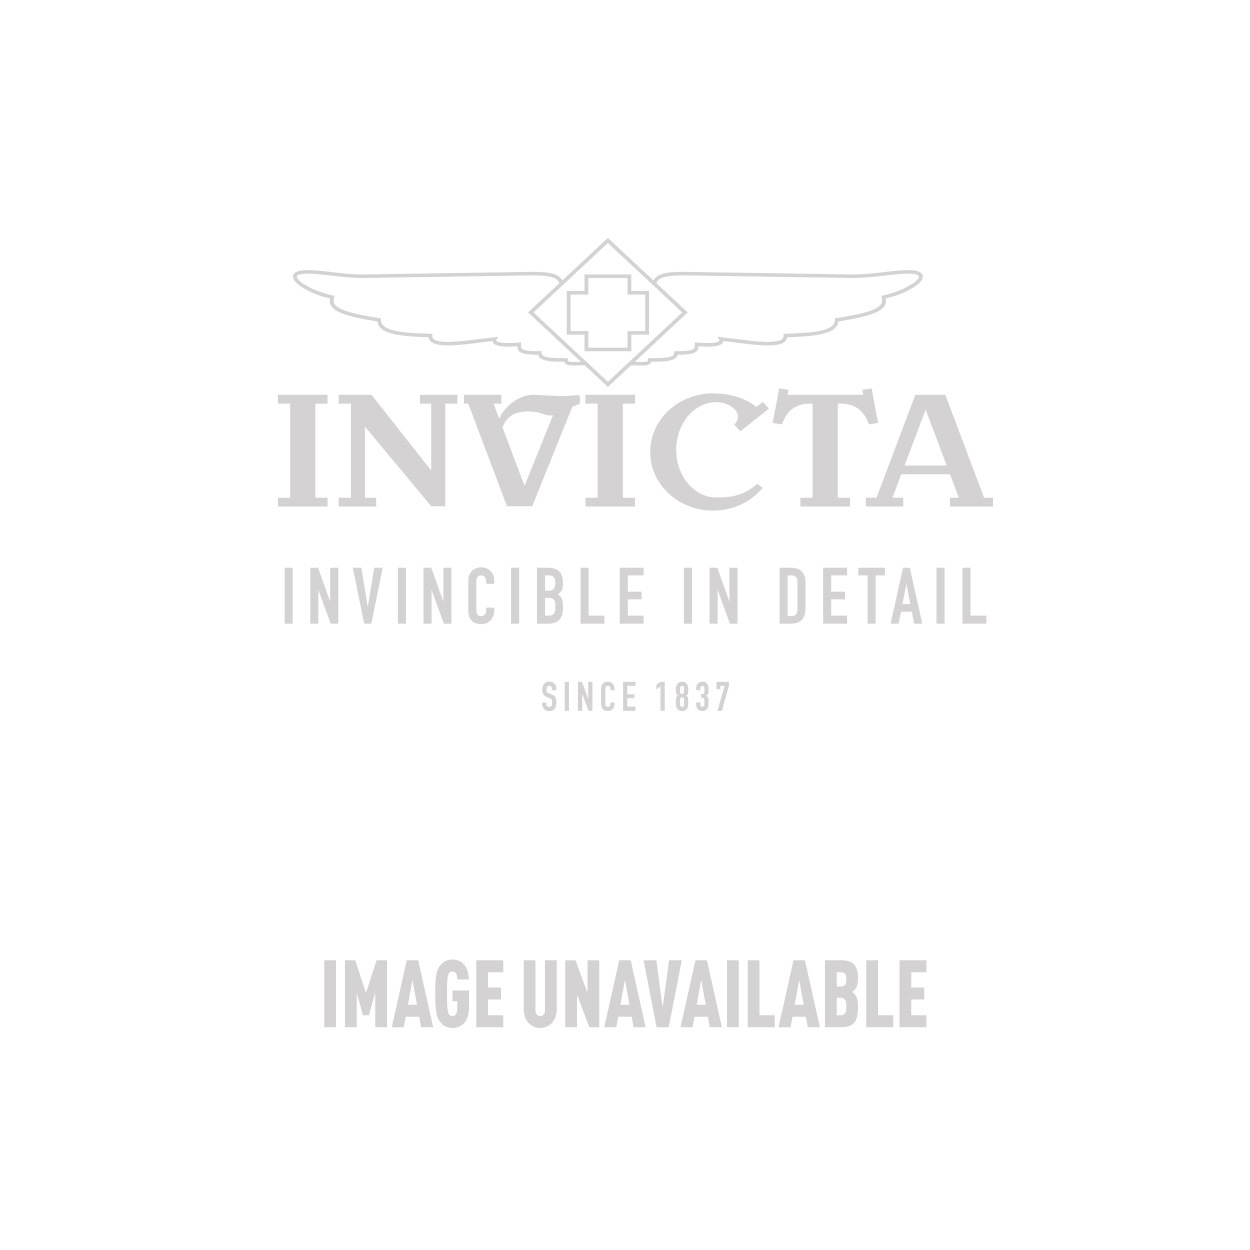 Invicta S. Coifman Swiss Movement Quartz Watch - Rose Gold case with Rose Gold tone Stainless Steel band - Model SC0333